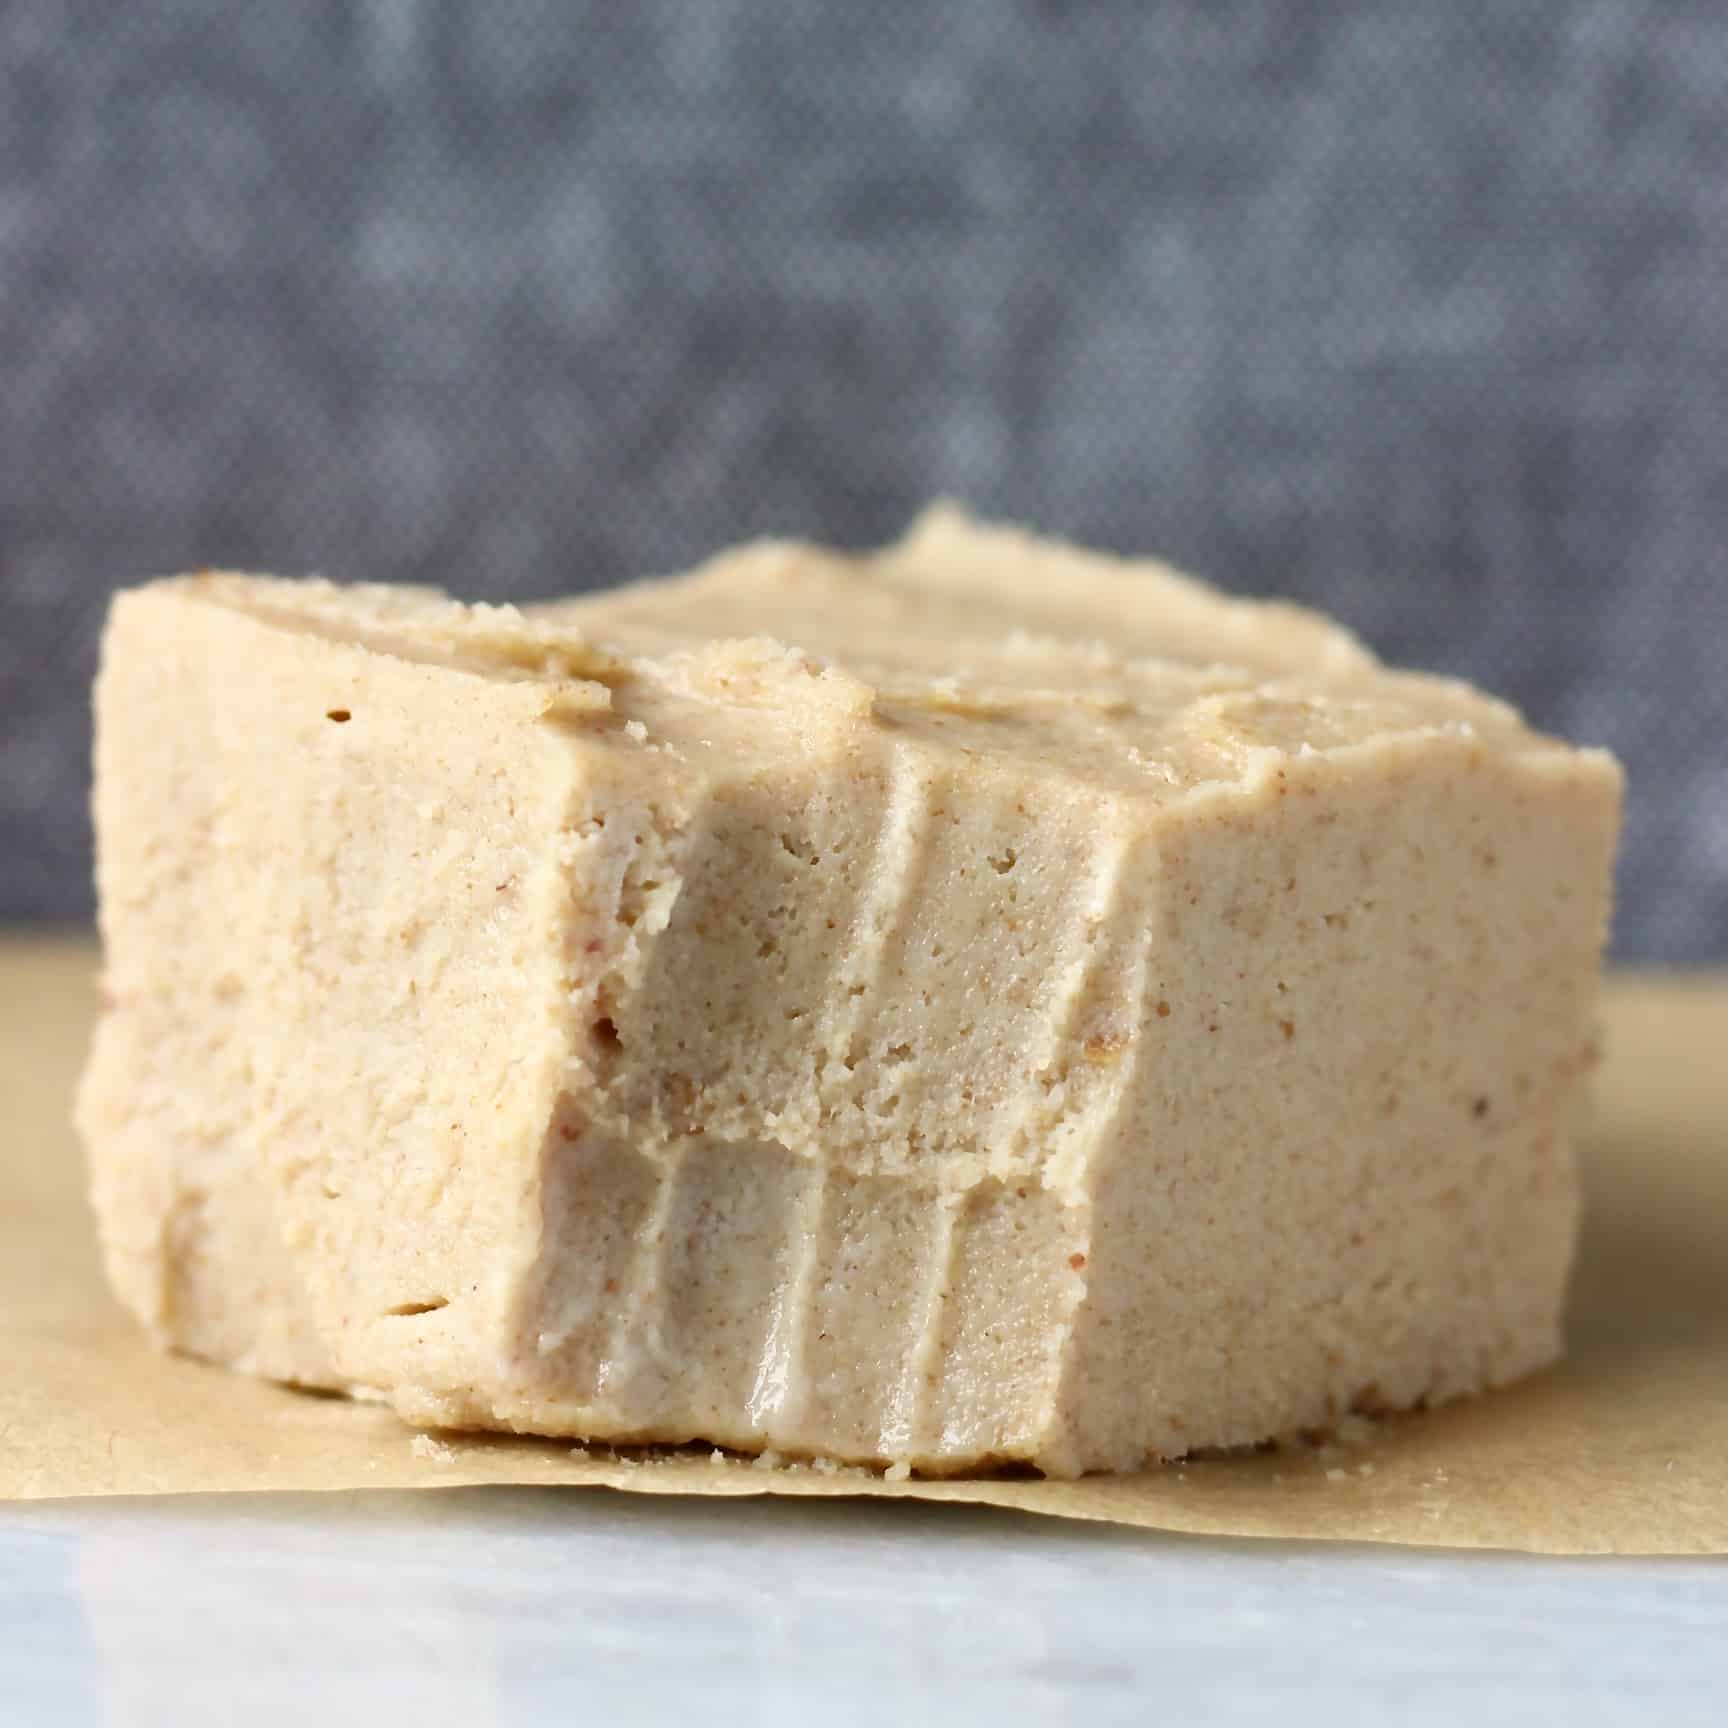 Photo of a square of caramel-coloured fudge with a bite taken out of it on a marble slab against a dark grey background